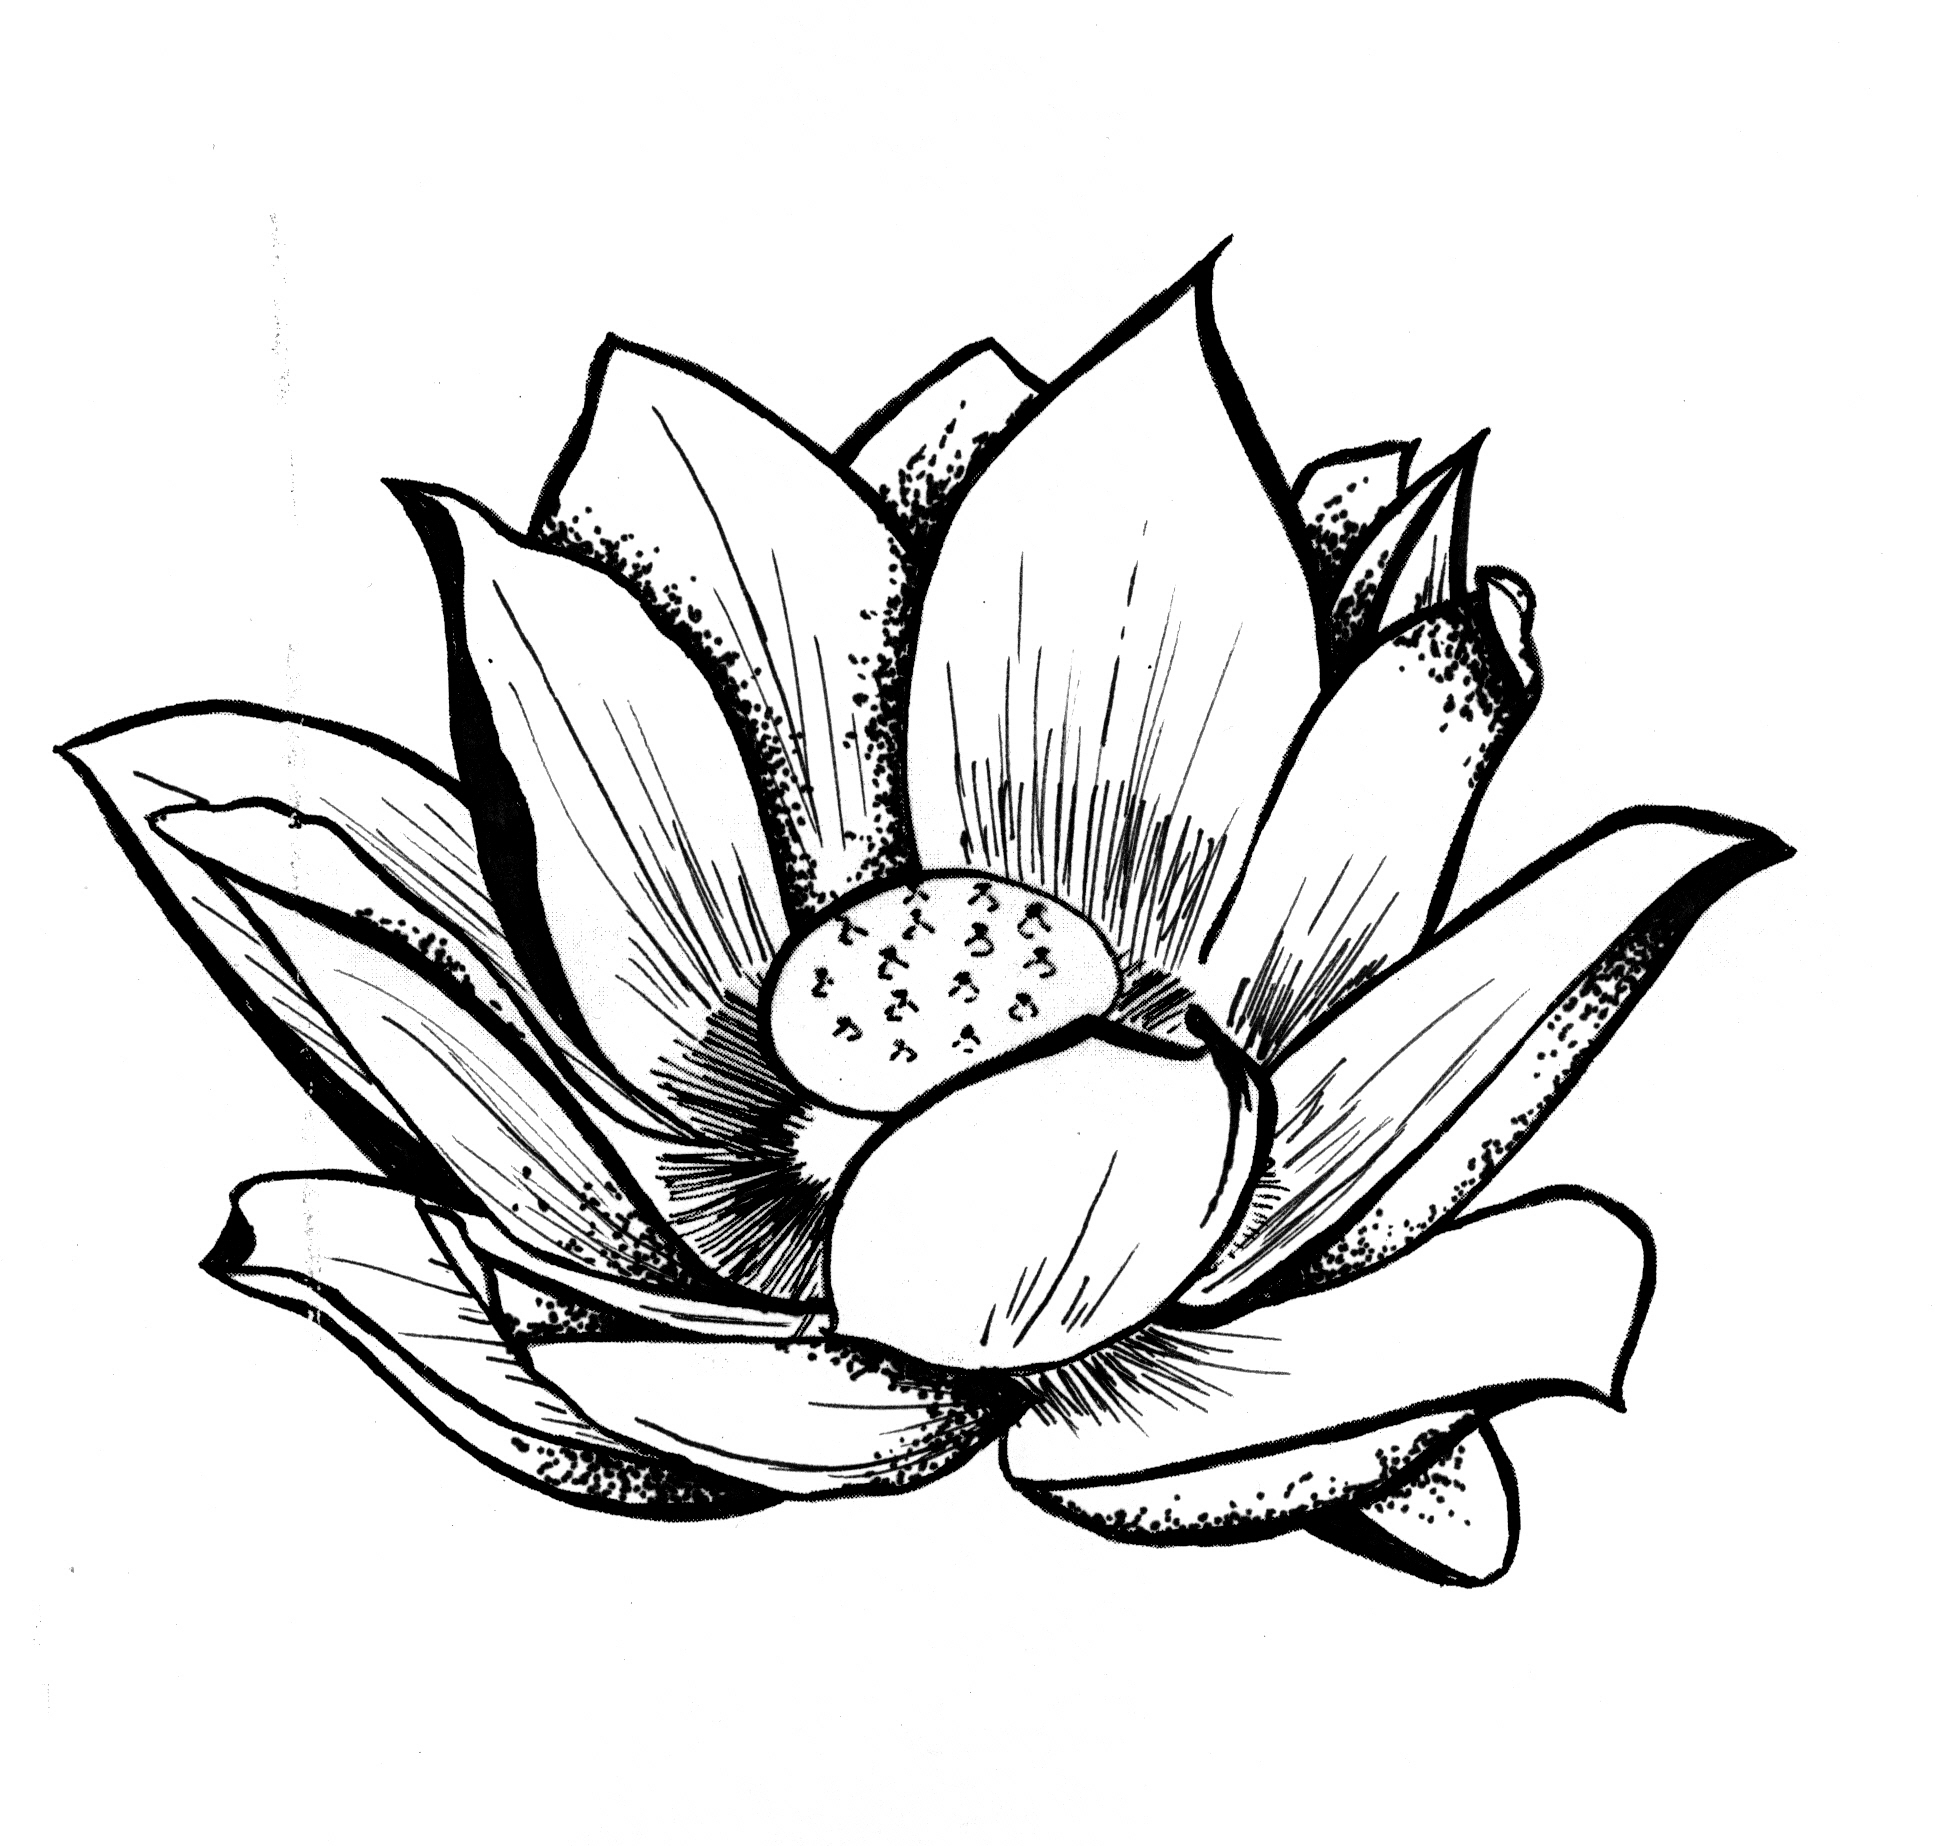 1935x1846 Japanese Lotus Flower Drawing Japanese Flower Drawing Lotus Flower